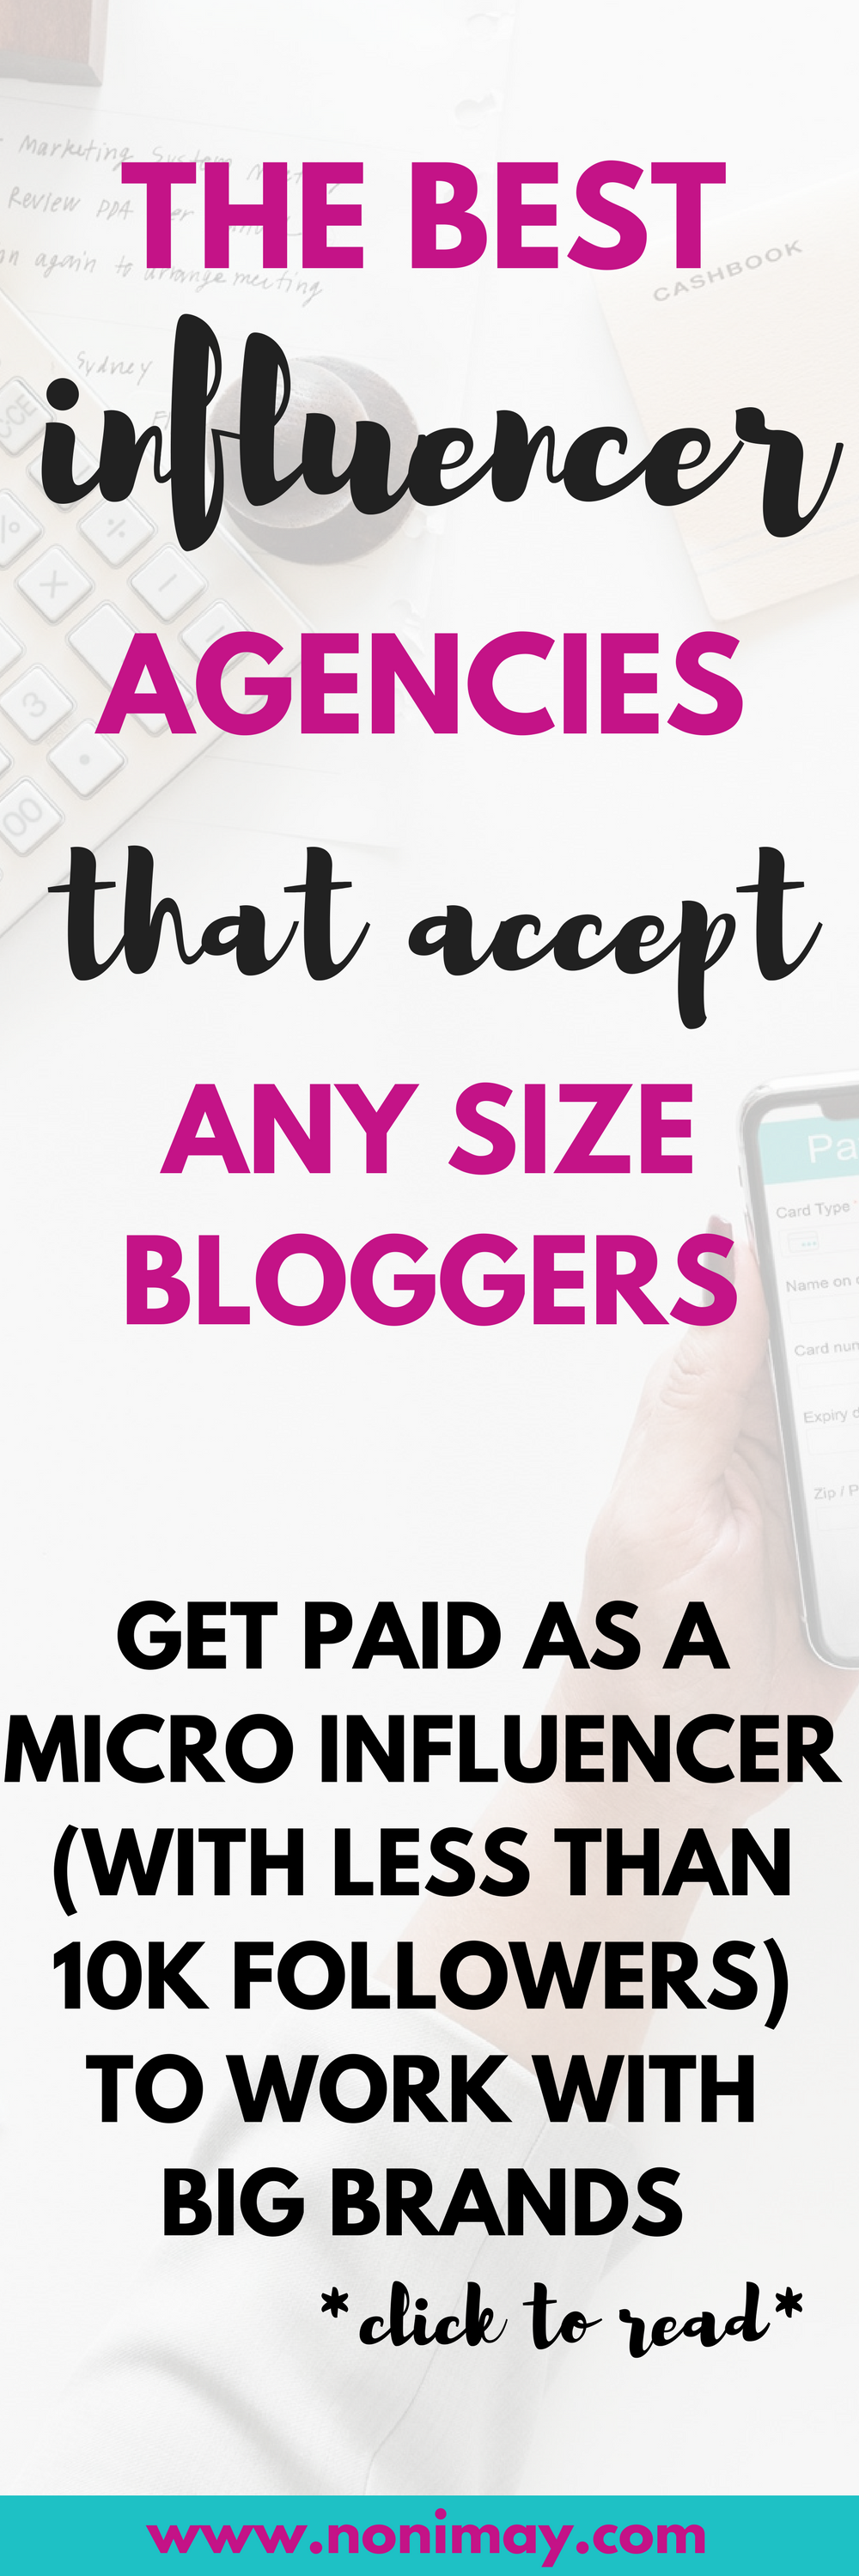 The best influencer agencies that accept any size bloggers. Get paid as a micro influencer with less than 10.000 followers to work with brands and make money blogging